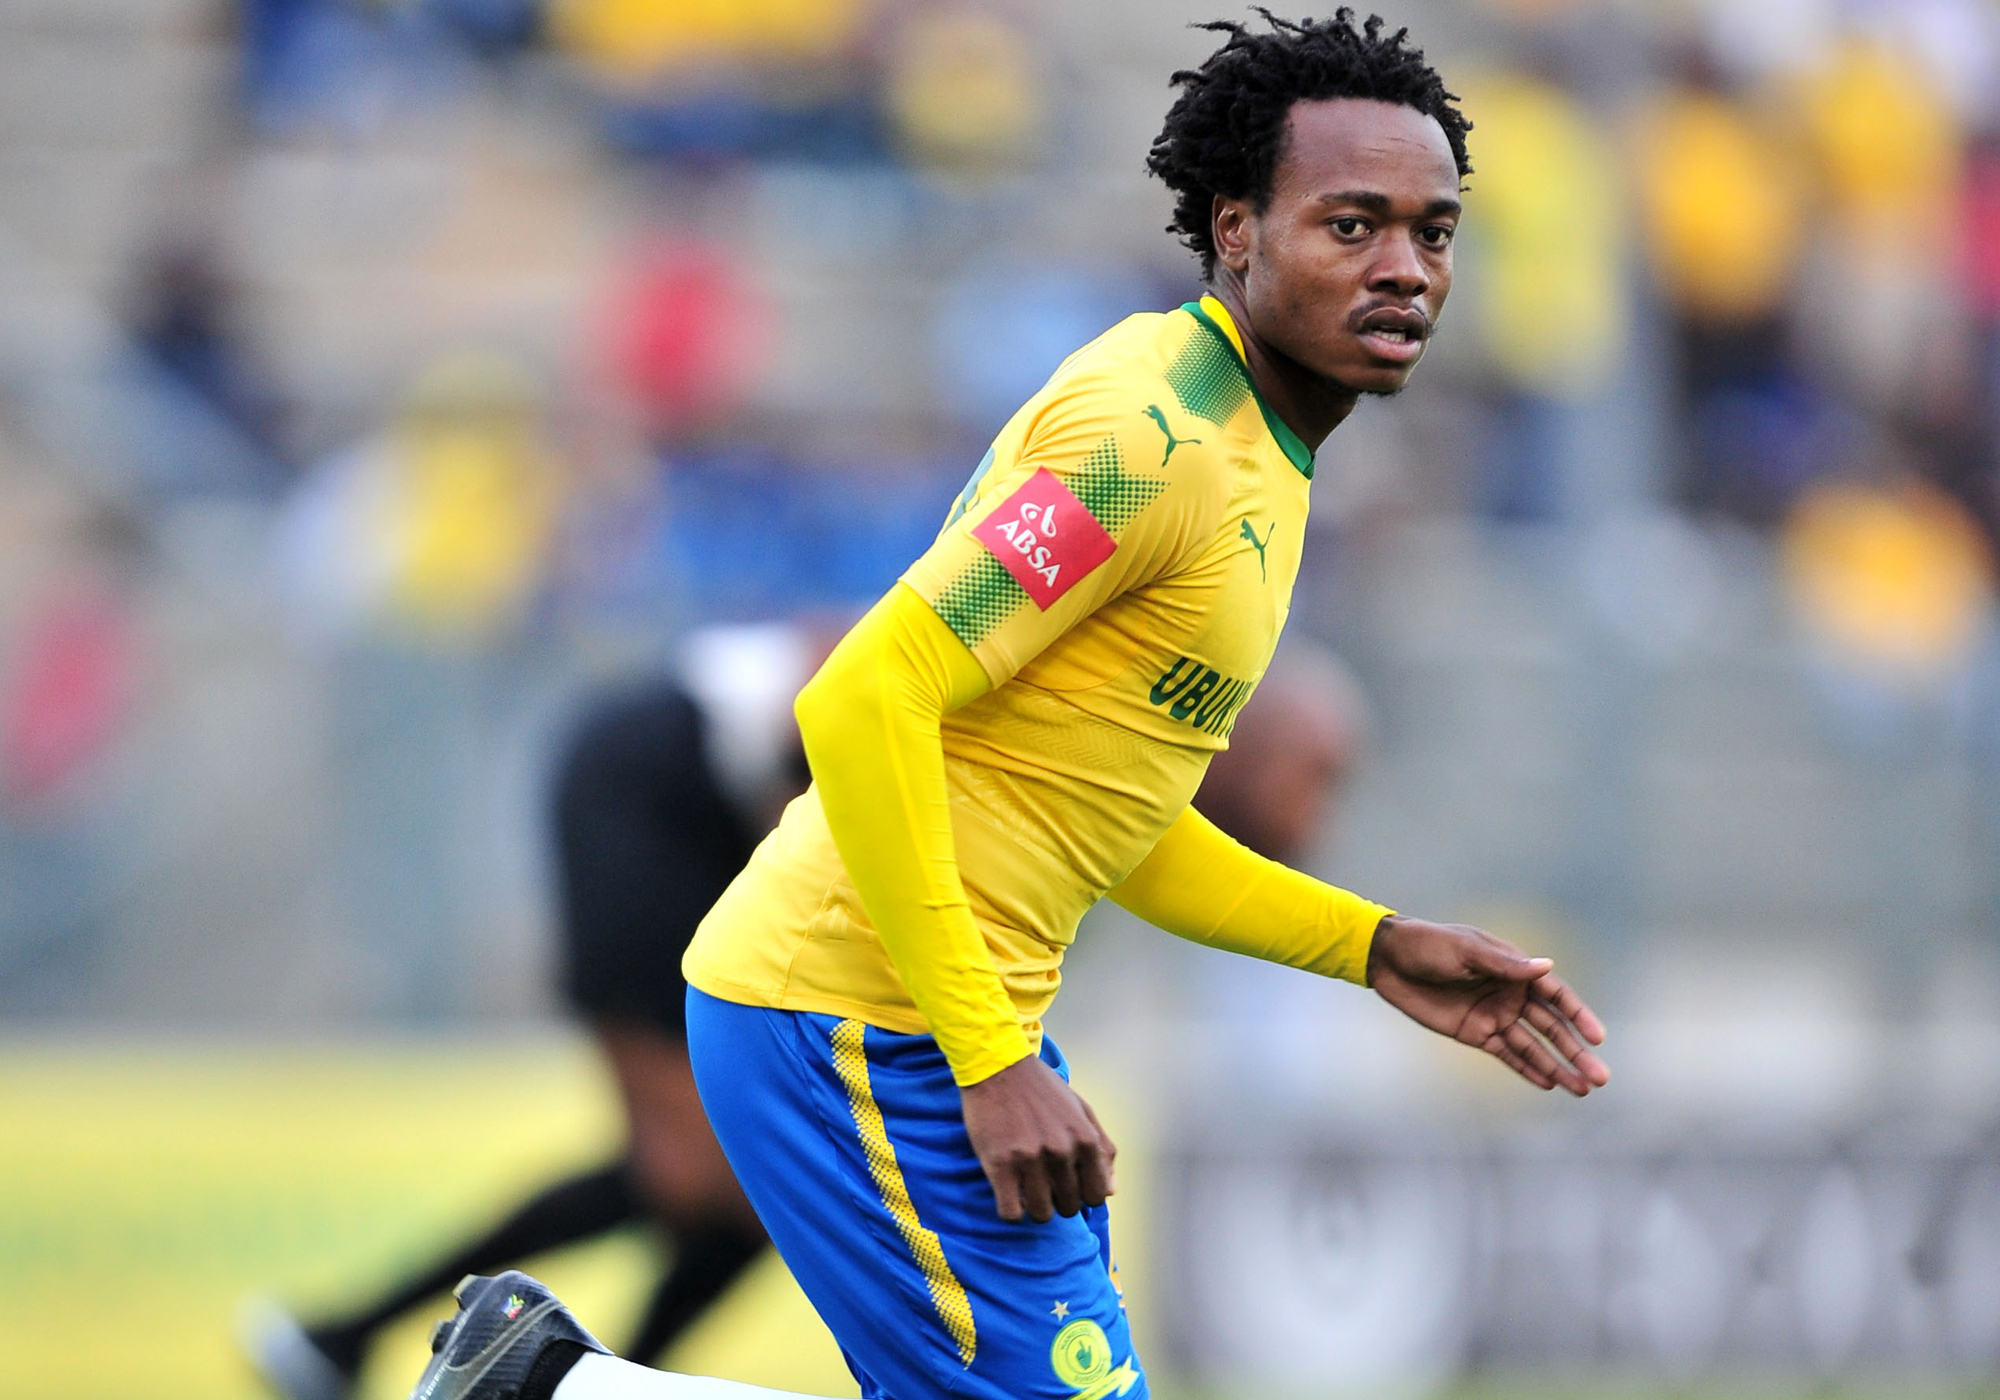 8f7d7c599484b Percy Tau on Nedbank Cup